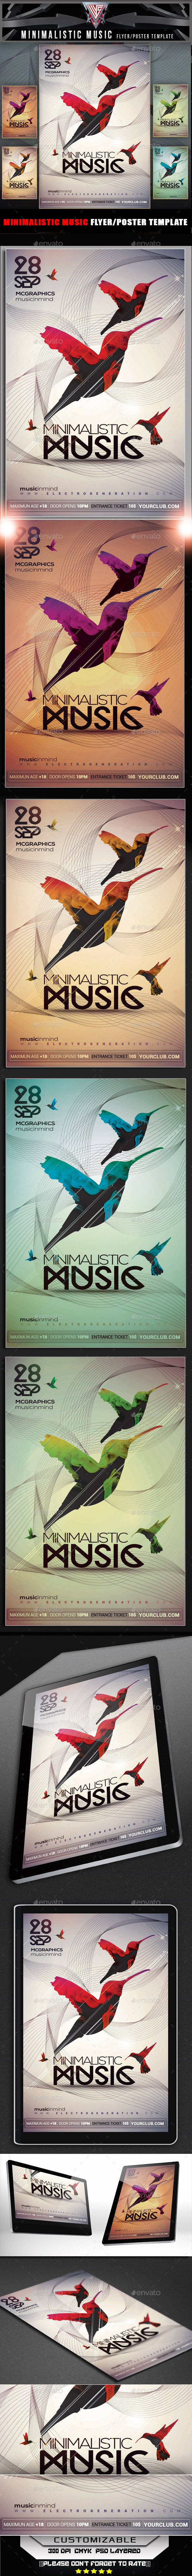 Minimal Music Flyer Template - Flyers Print Templates